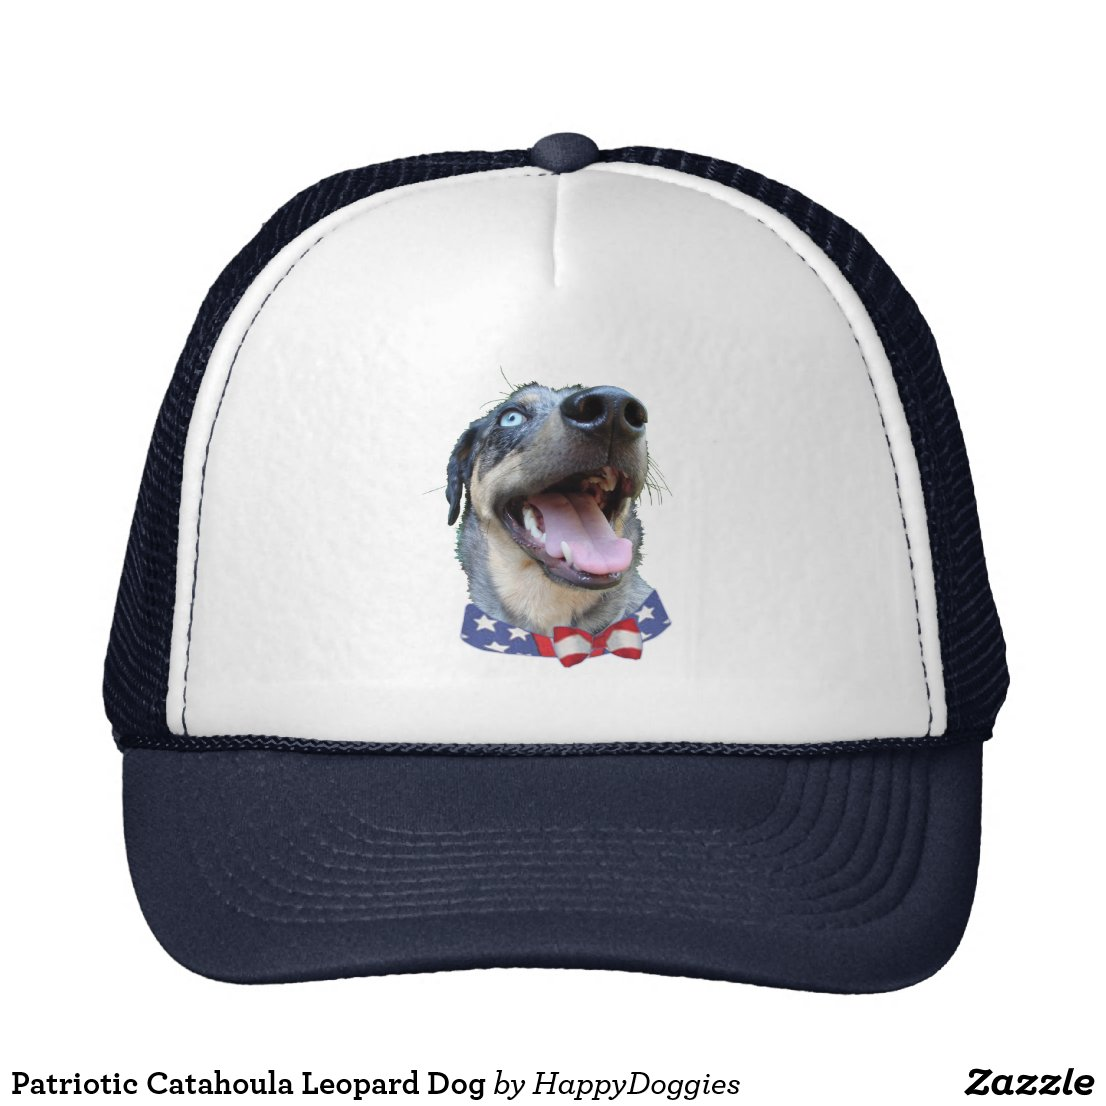 Patriotic Catahoula Leopard Dog hat